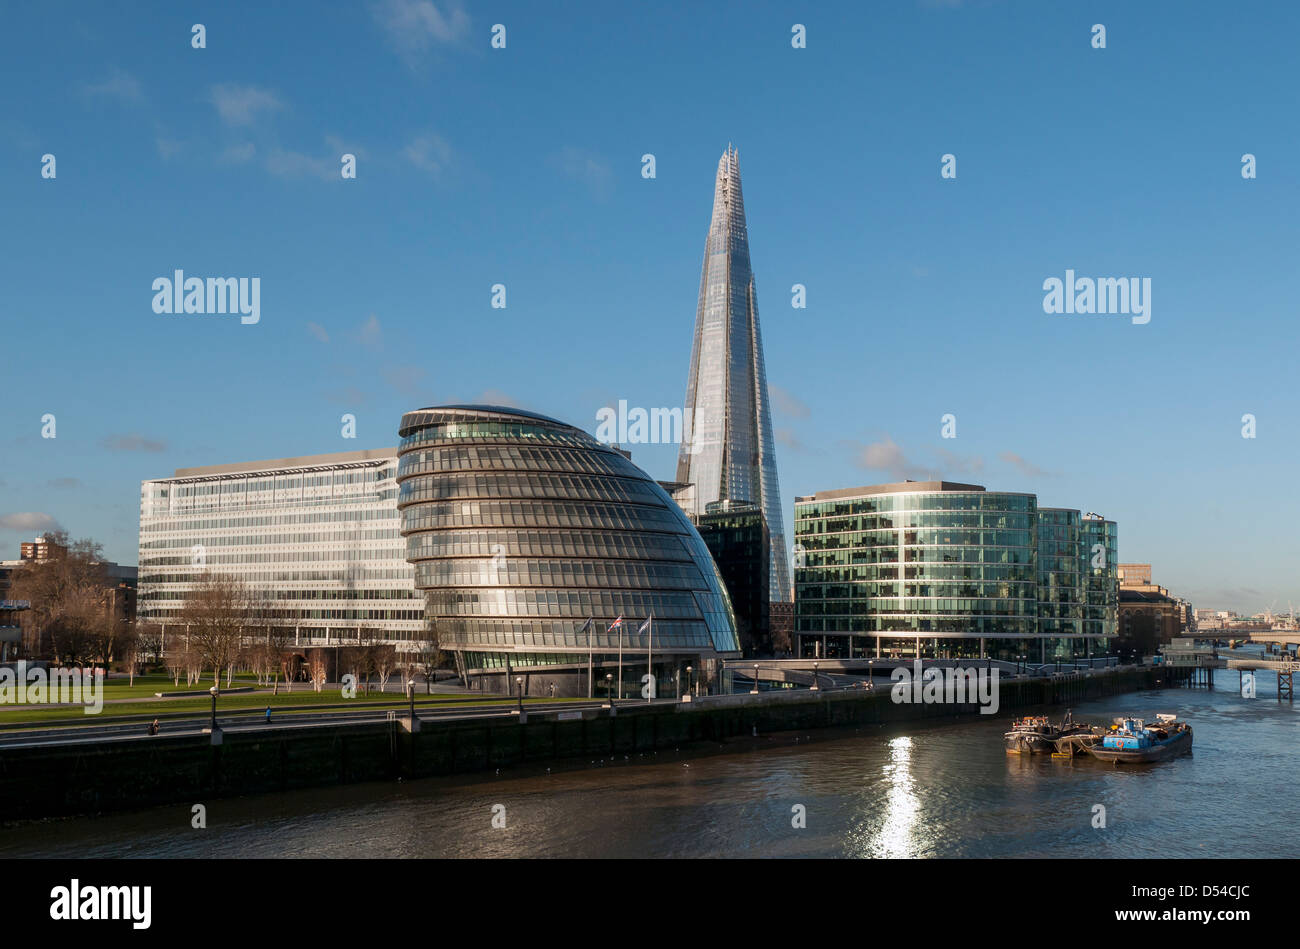 London City Hall (GLA Building) and The Shard Skyscraper as seen from Tower Bridge, England, UK - Stock Image